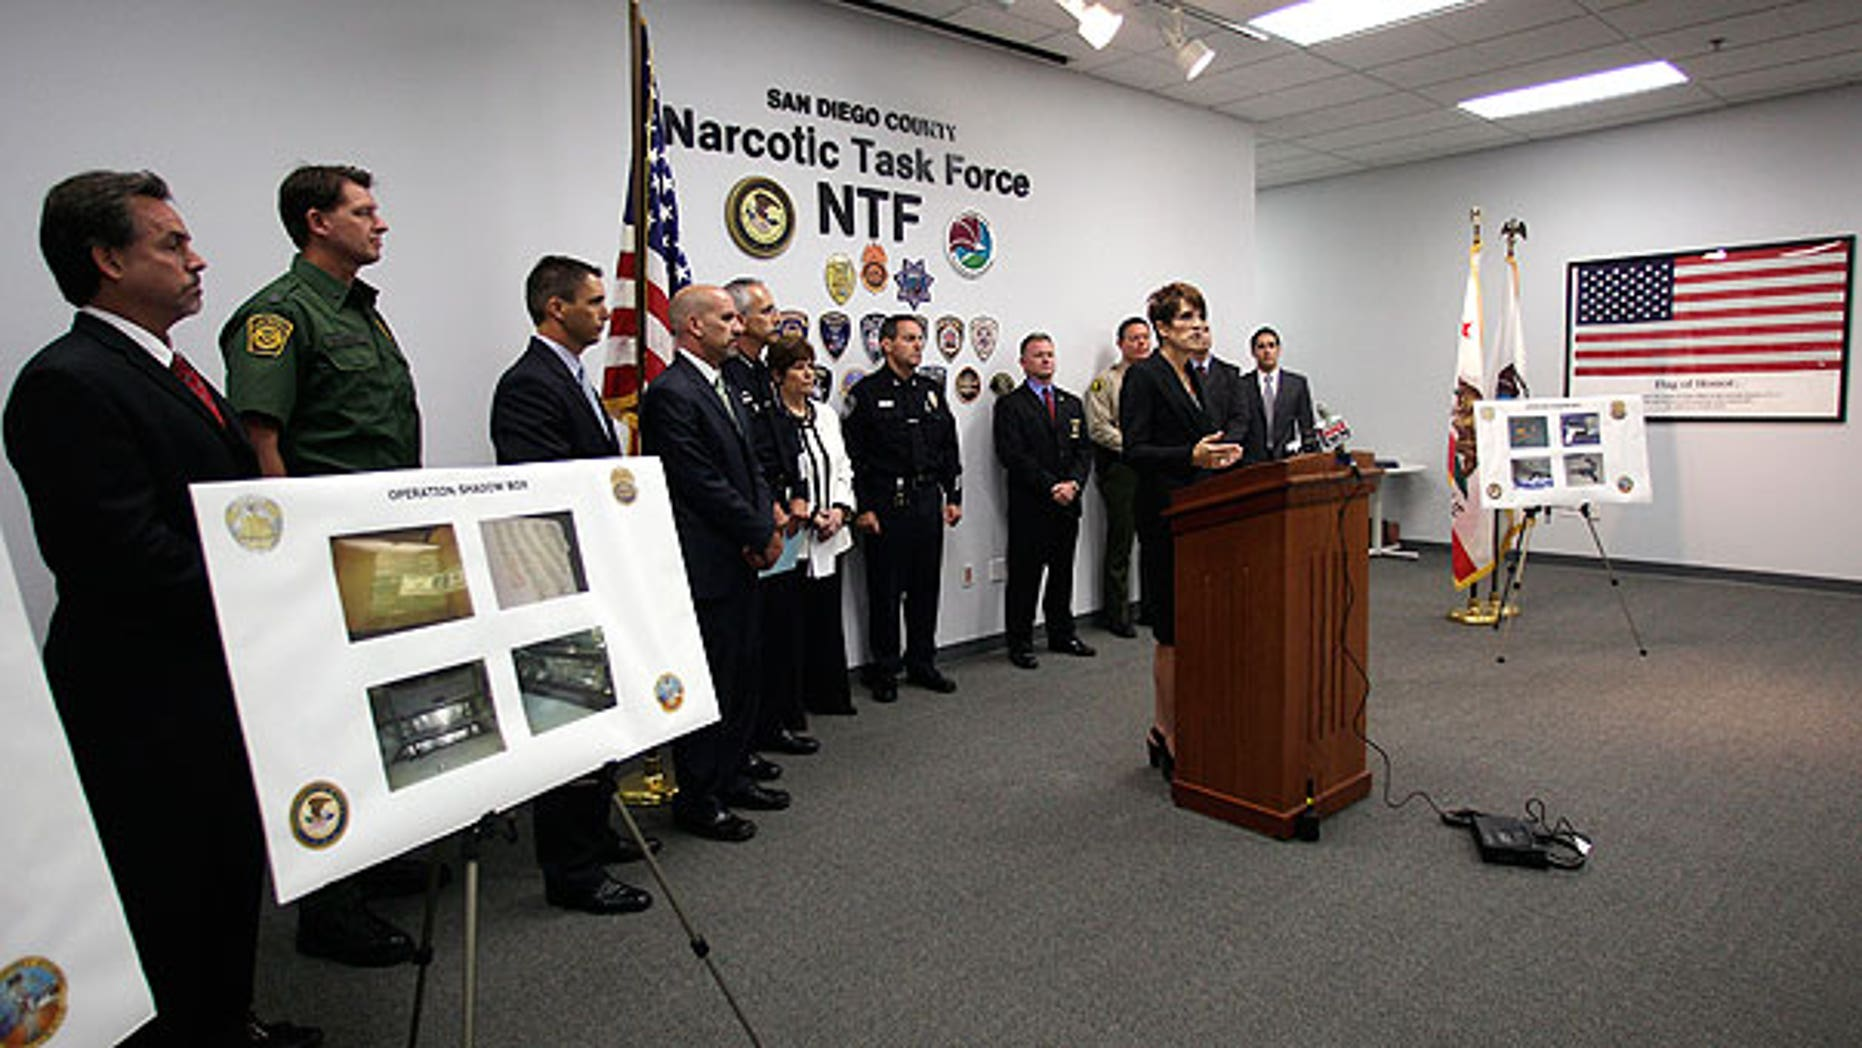 Aug. 18: United States Attorney Laura E. Duffy talks about the indictments evolving from arrest made in the undercover operation involving Iraqi Immigrants and Mexican drug cartels at a news conference in San Diego.